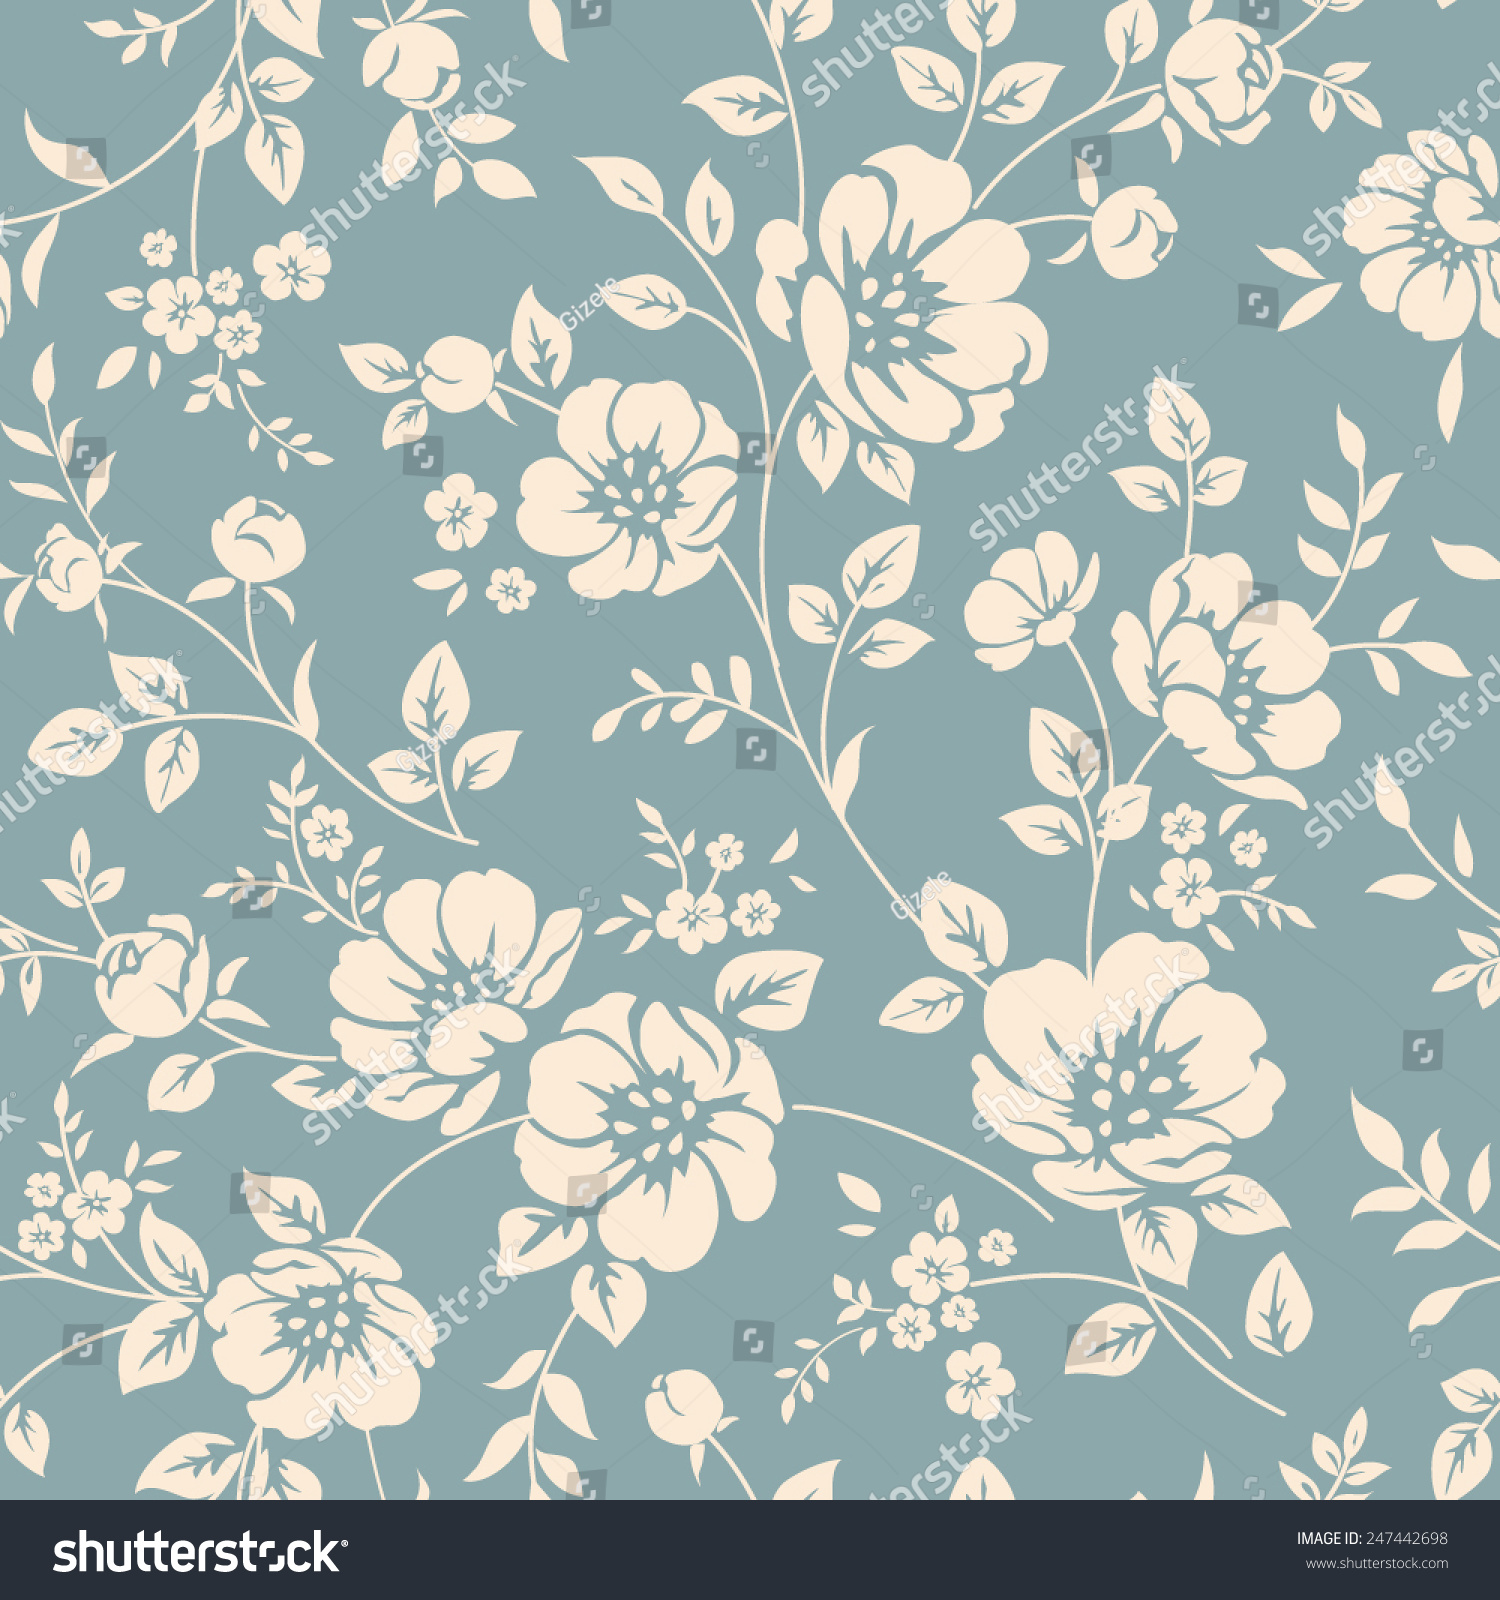 Seamless Vector Floral Wallpaper Decorative Vintage Backgrounds